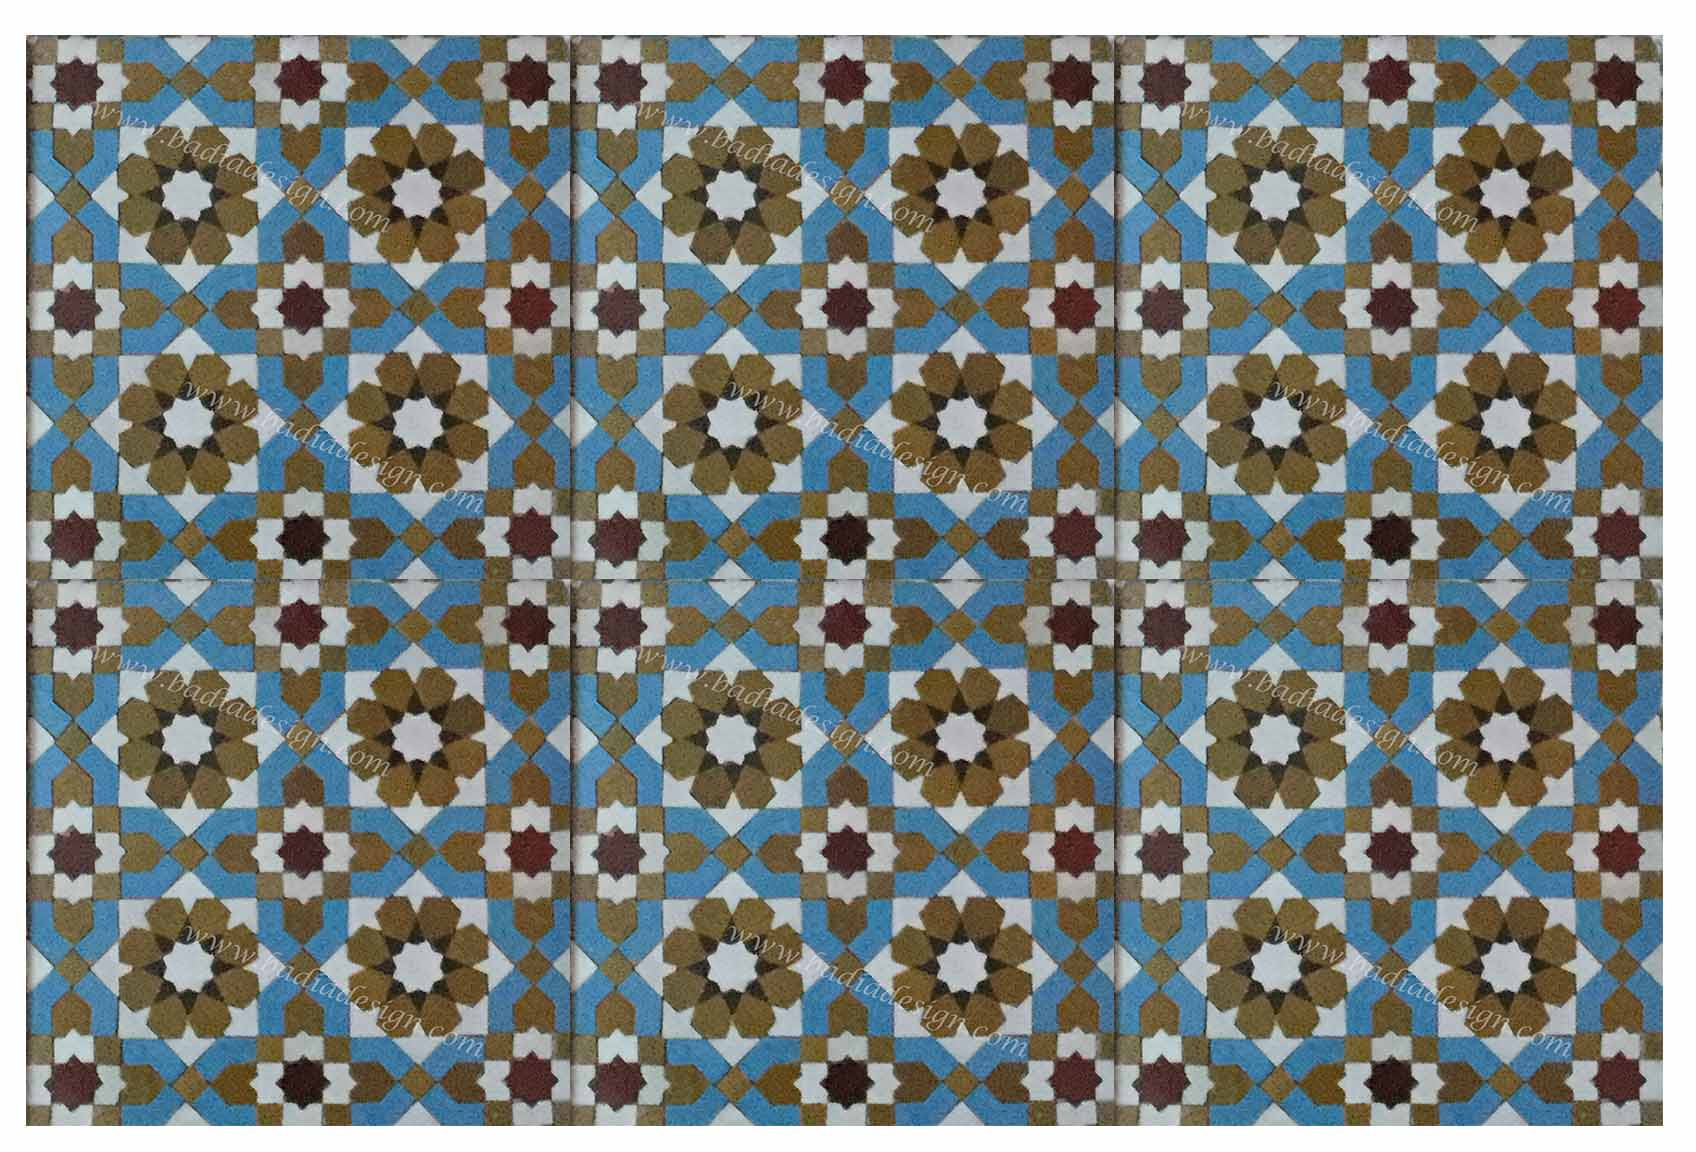 Moroccan mosaic floor tile from badia design inc moroccan mosaic floor tiles from badia design inc dailygadgetfo Image collections